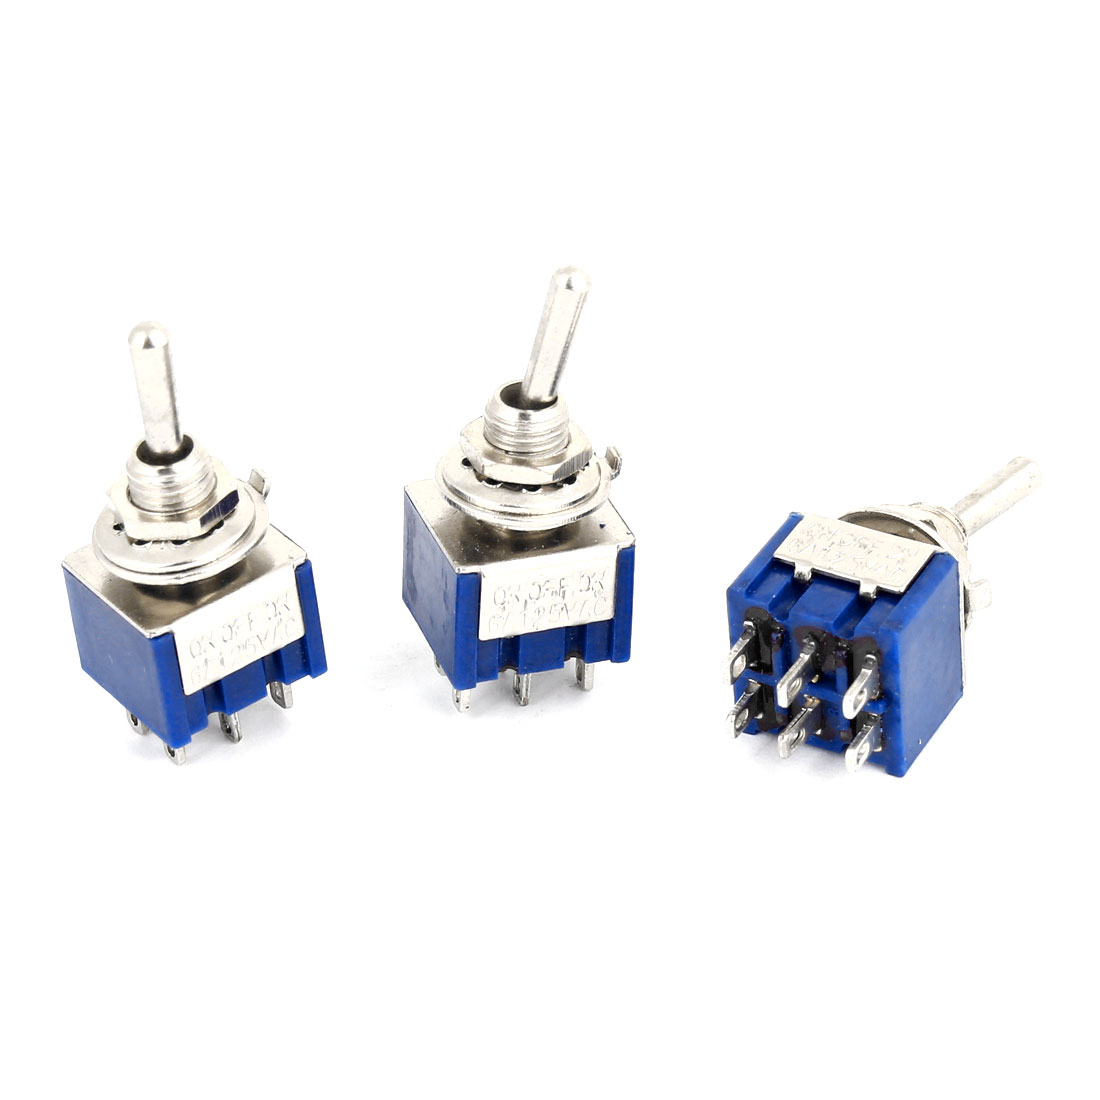 3 Pcs Switching Light Toggle Switch 3 Positions 6Pins DPDT AC 125V 6A